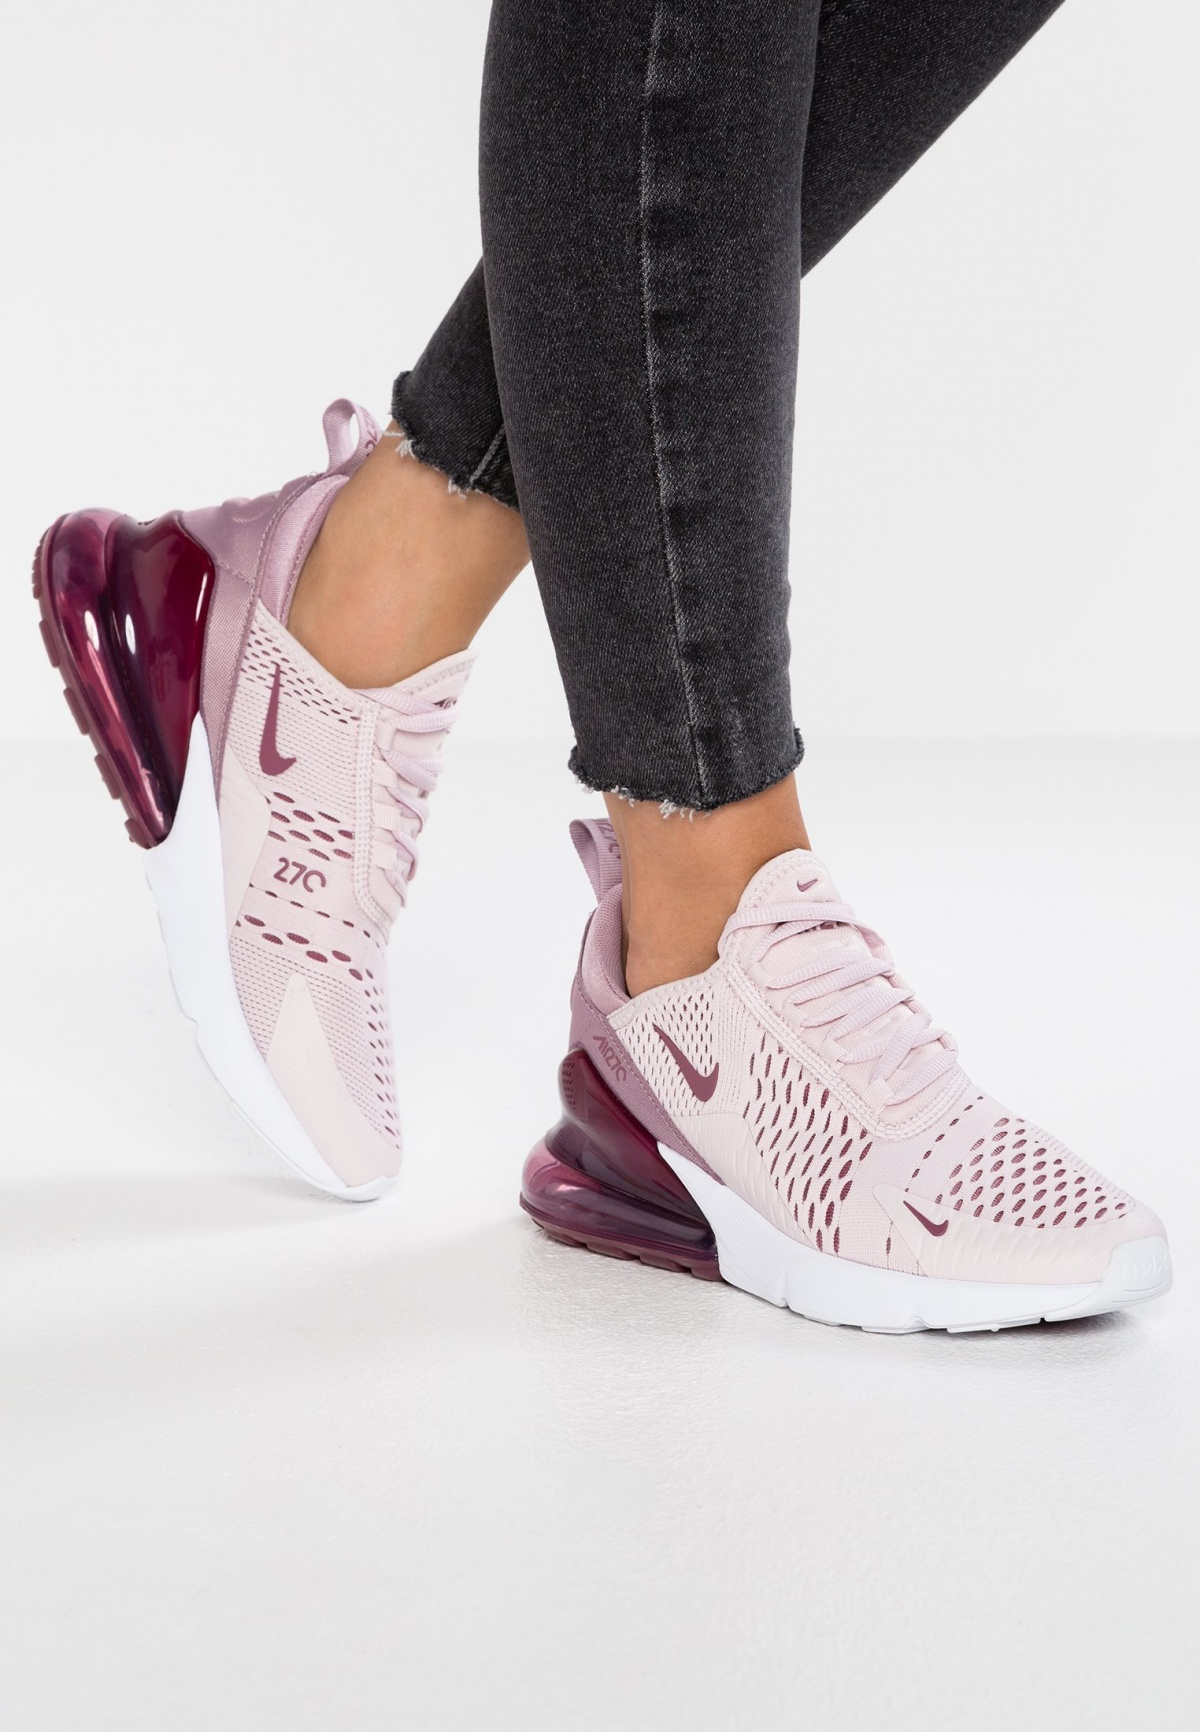 AIR MAX 270 - Trainers by Nike, available on zalando.co.uk for EUR129.99 Hailey Baldwin Shoes Exact Product